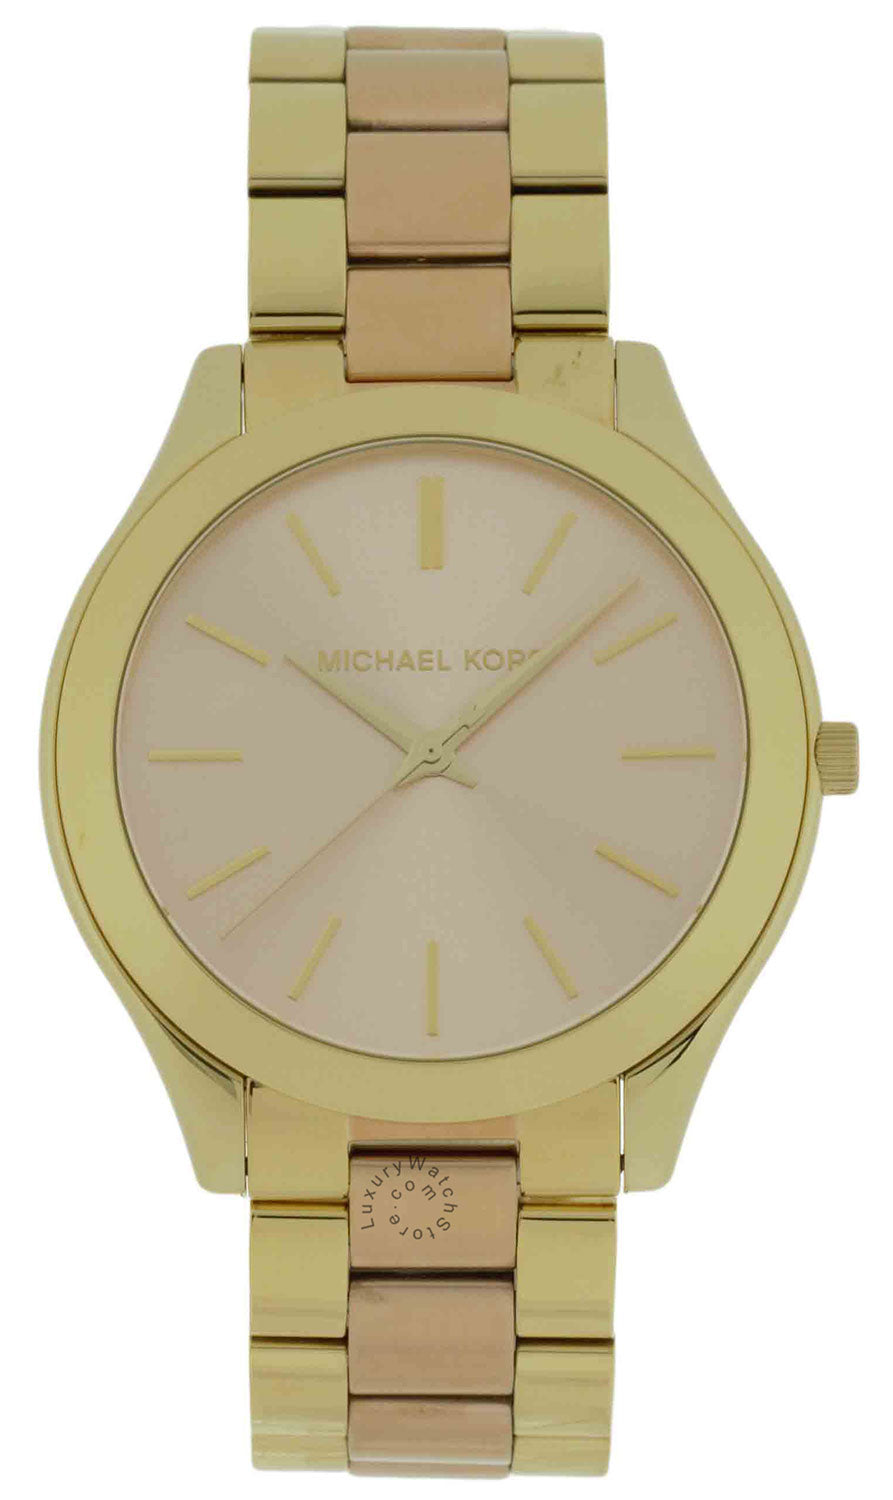 Michael Kors Slim Runway Two Toned Steel Women's Watch MK3493